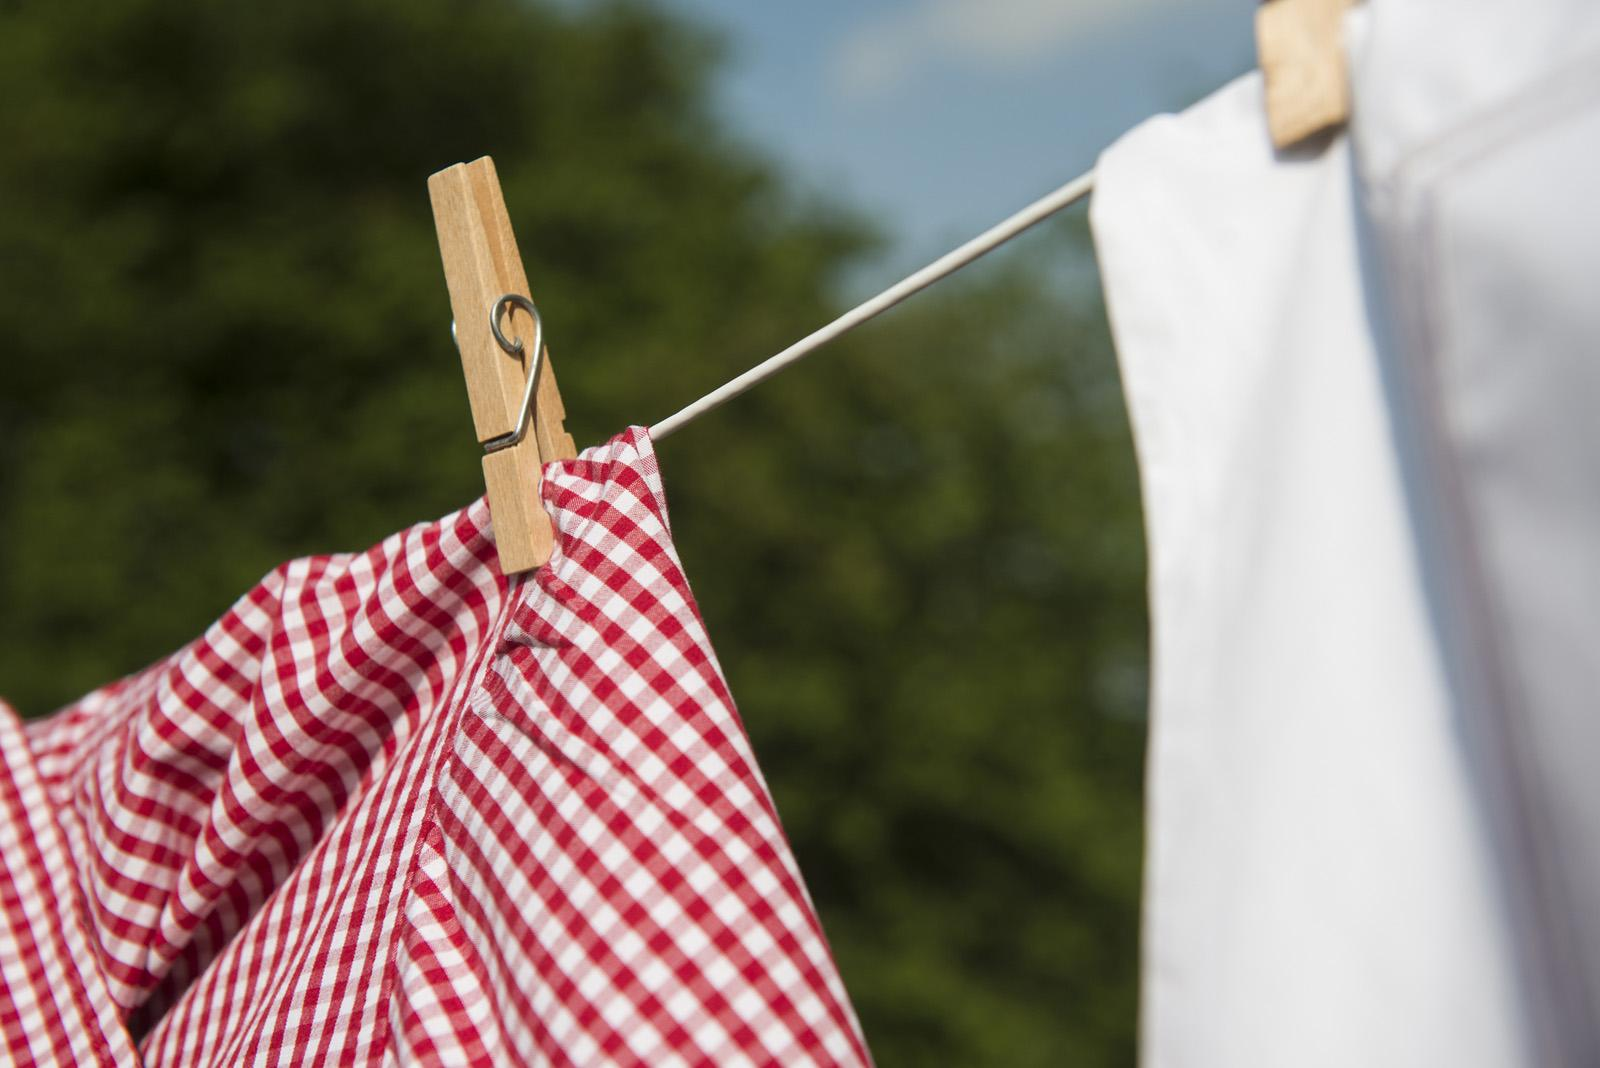 A red gingham apron on a washing line with wooden pegs